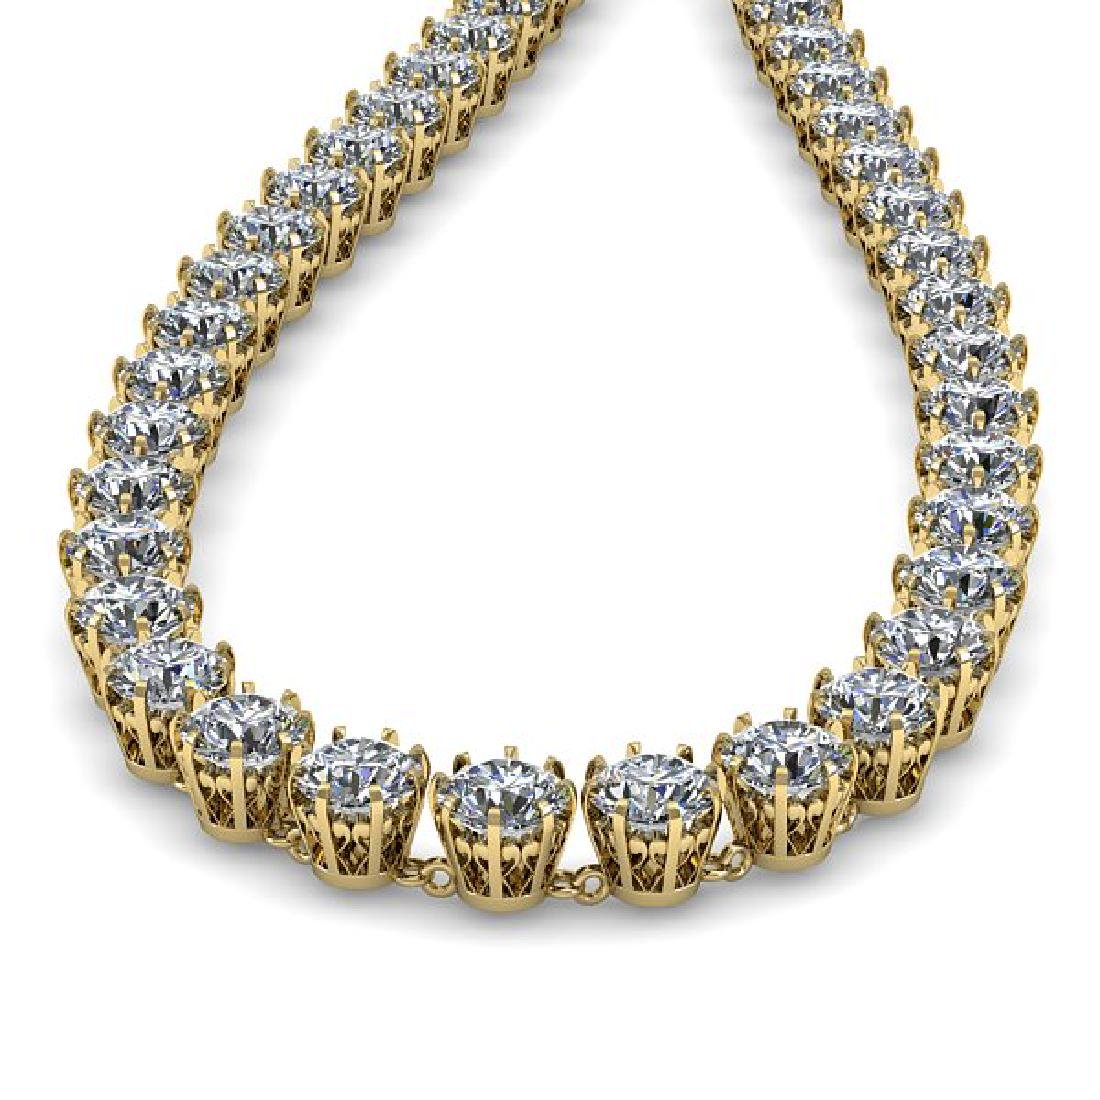 40 CTW SI Certified Diamond Necklace 14K Yellow Gold - 2